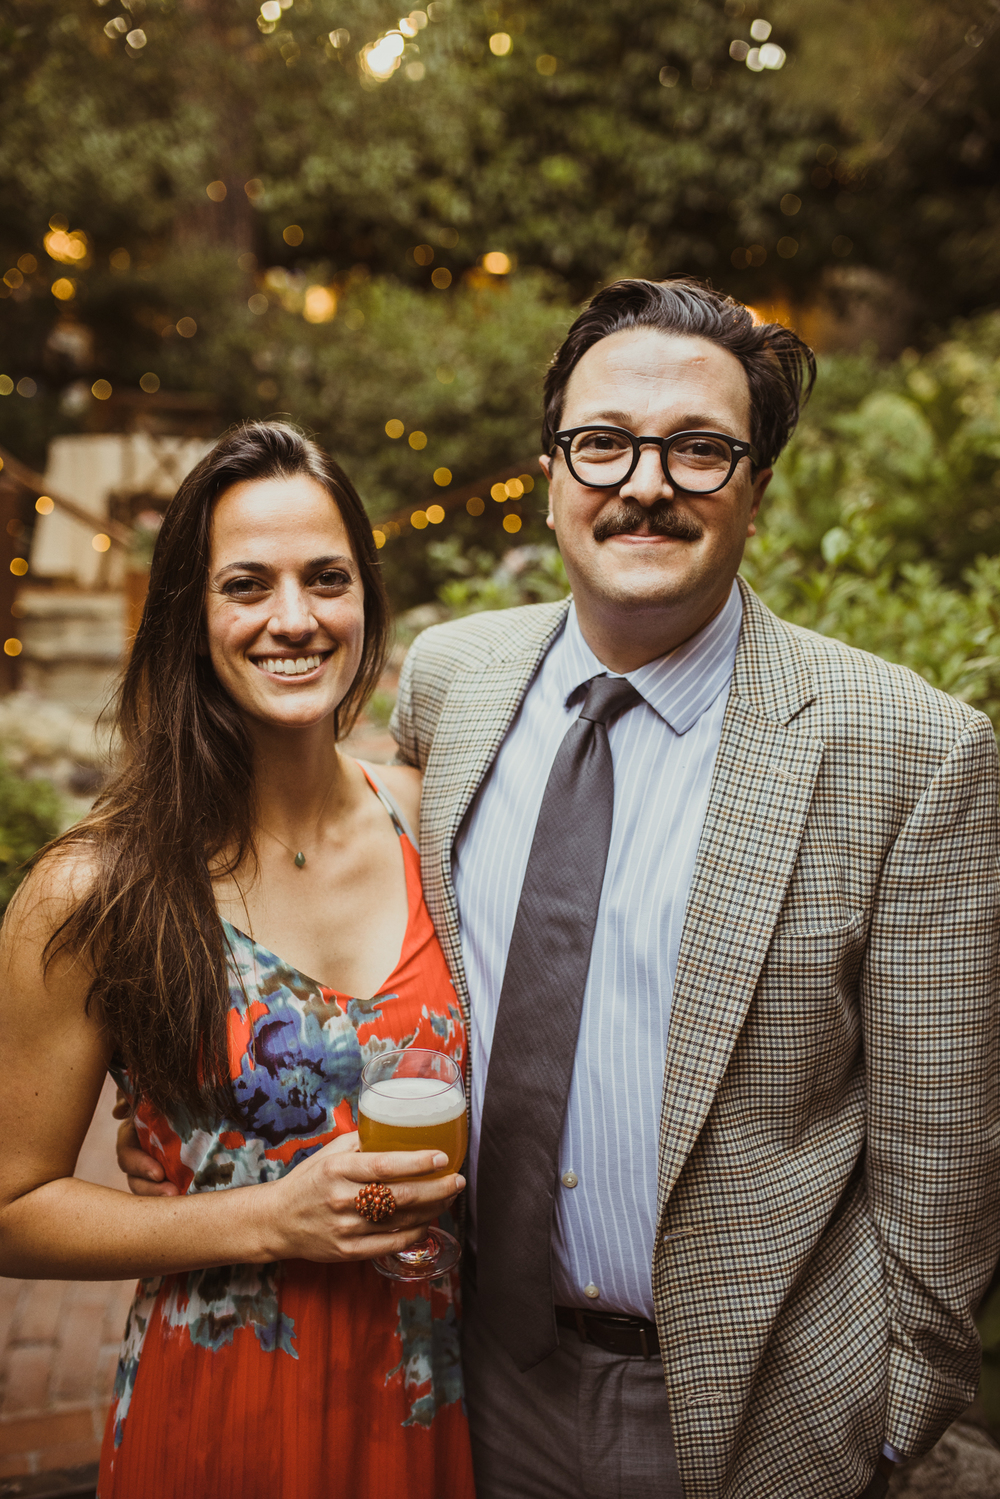 ©Isaiah & Taylor Photography - Inn of the Seventh Ray Wedding, Topanga Canyon California-110.jpg